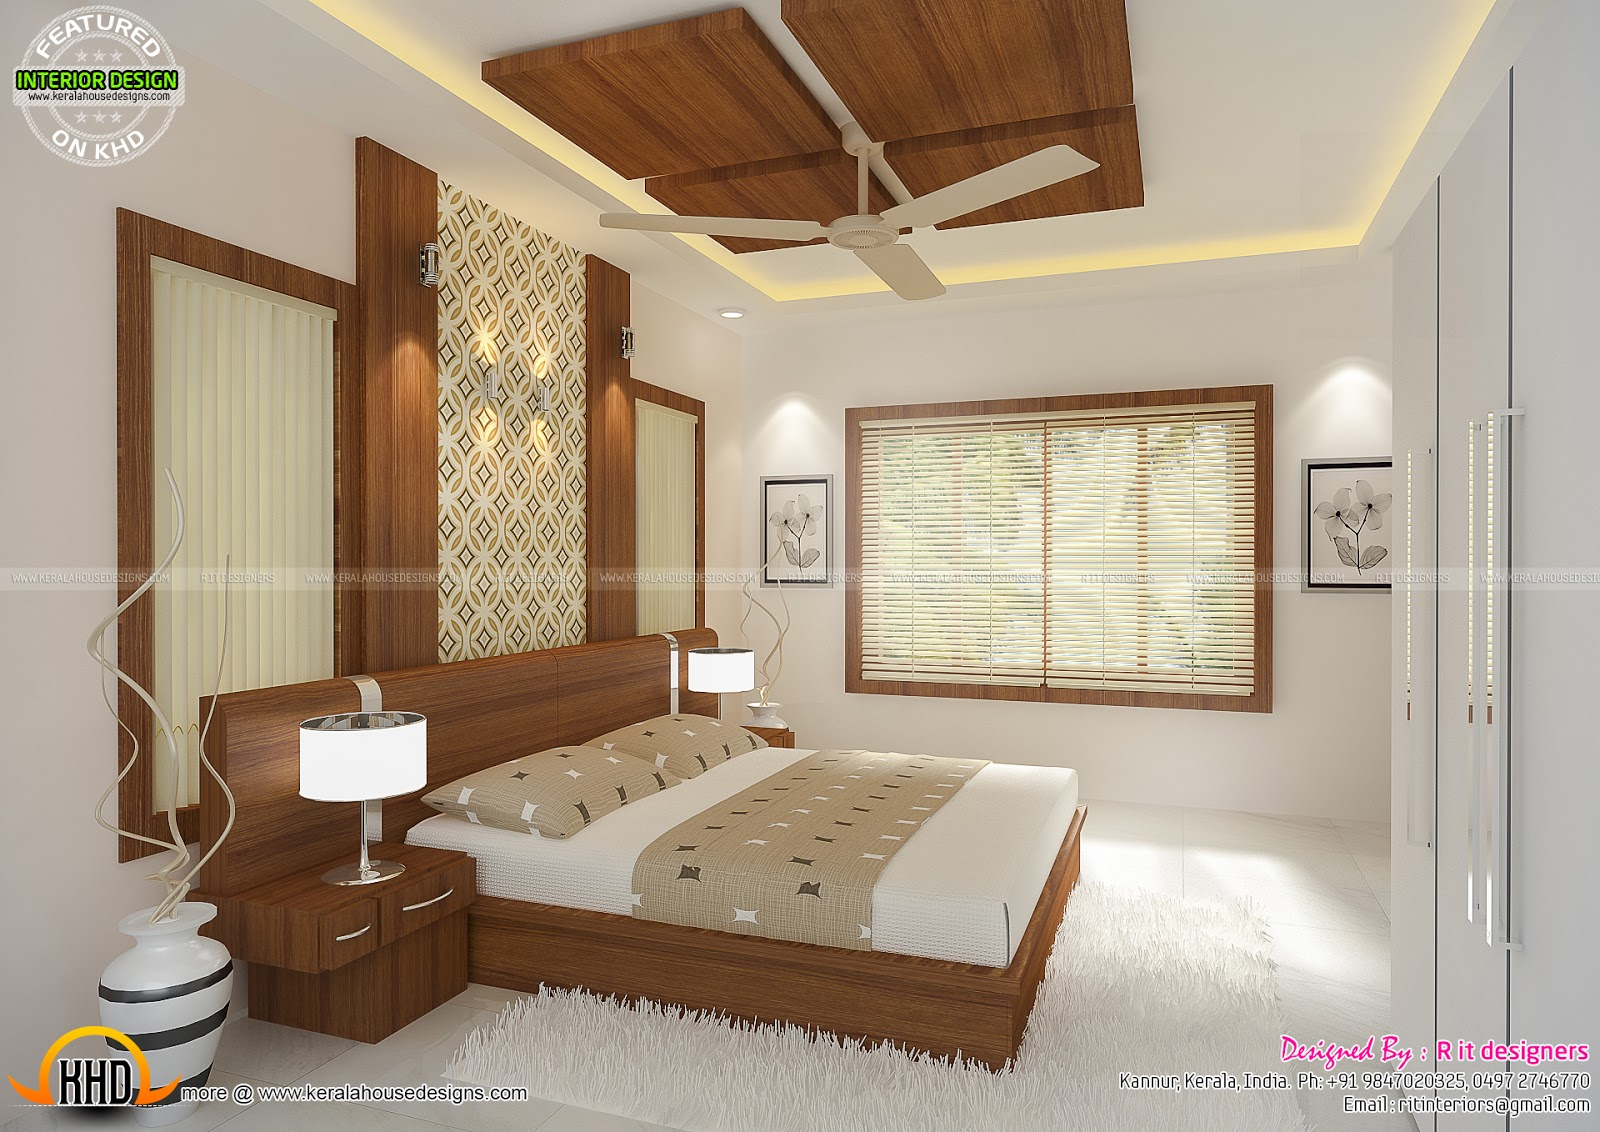 Interiors of bedrooms and kitchen kerala home design and for Kerala home interior